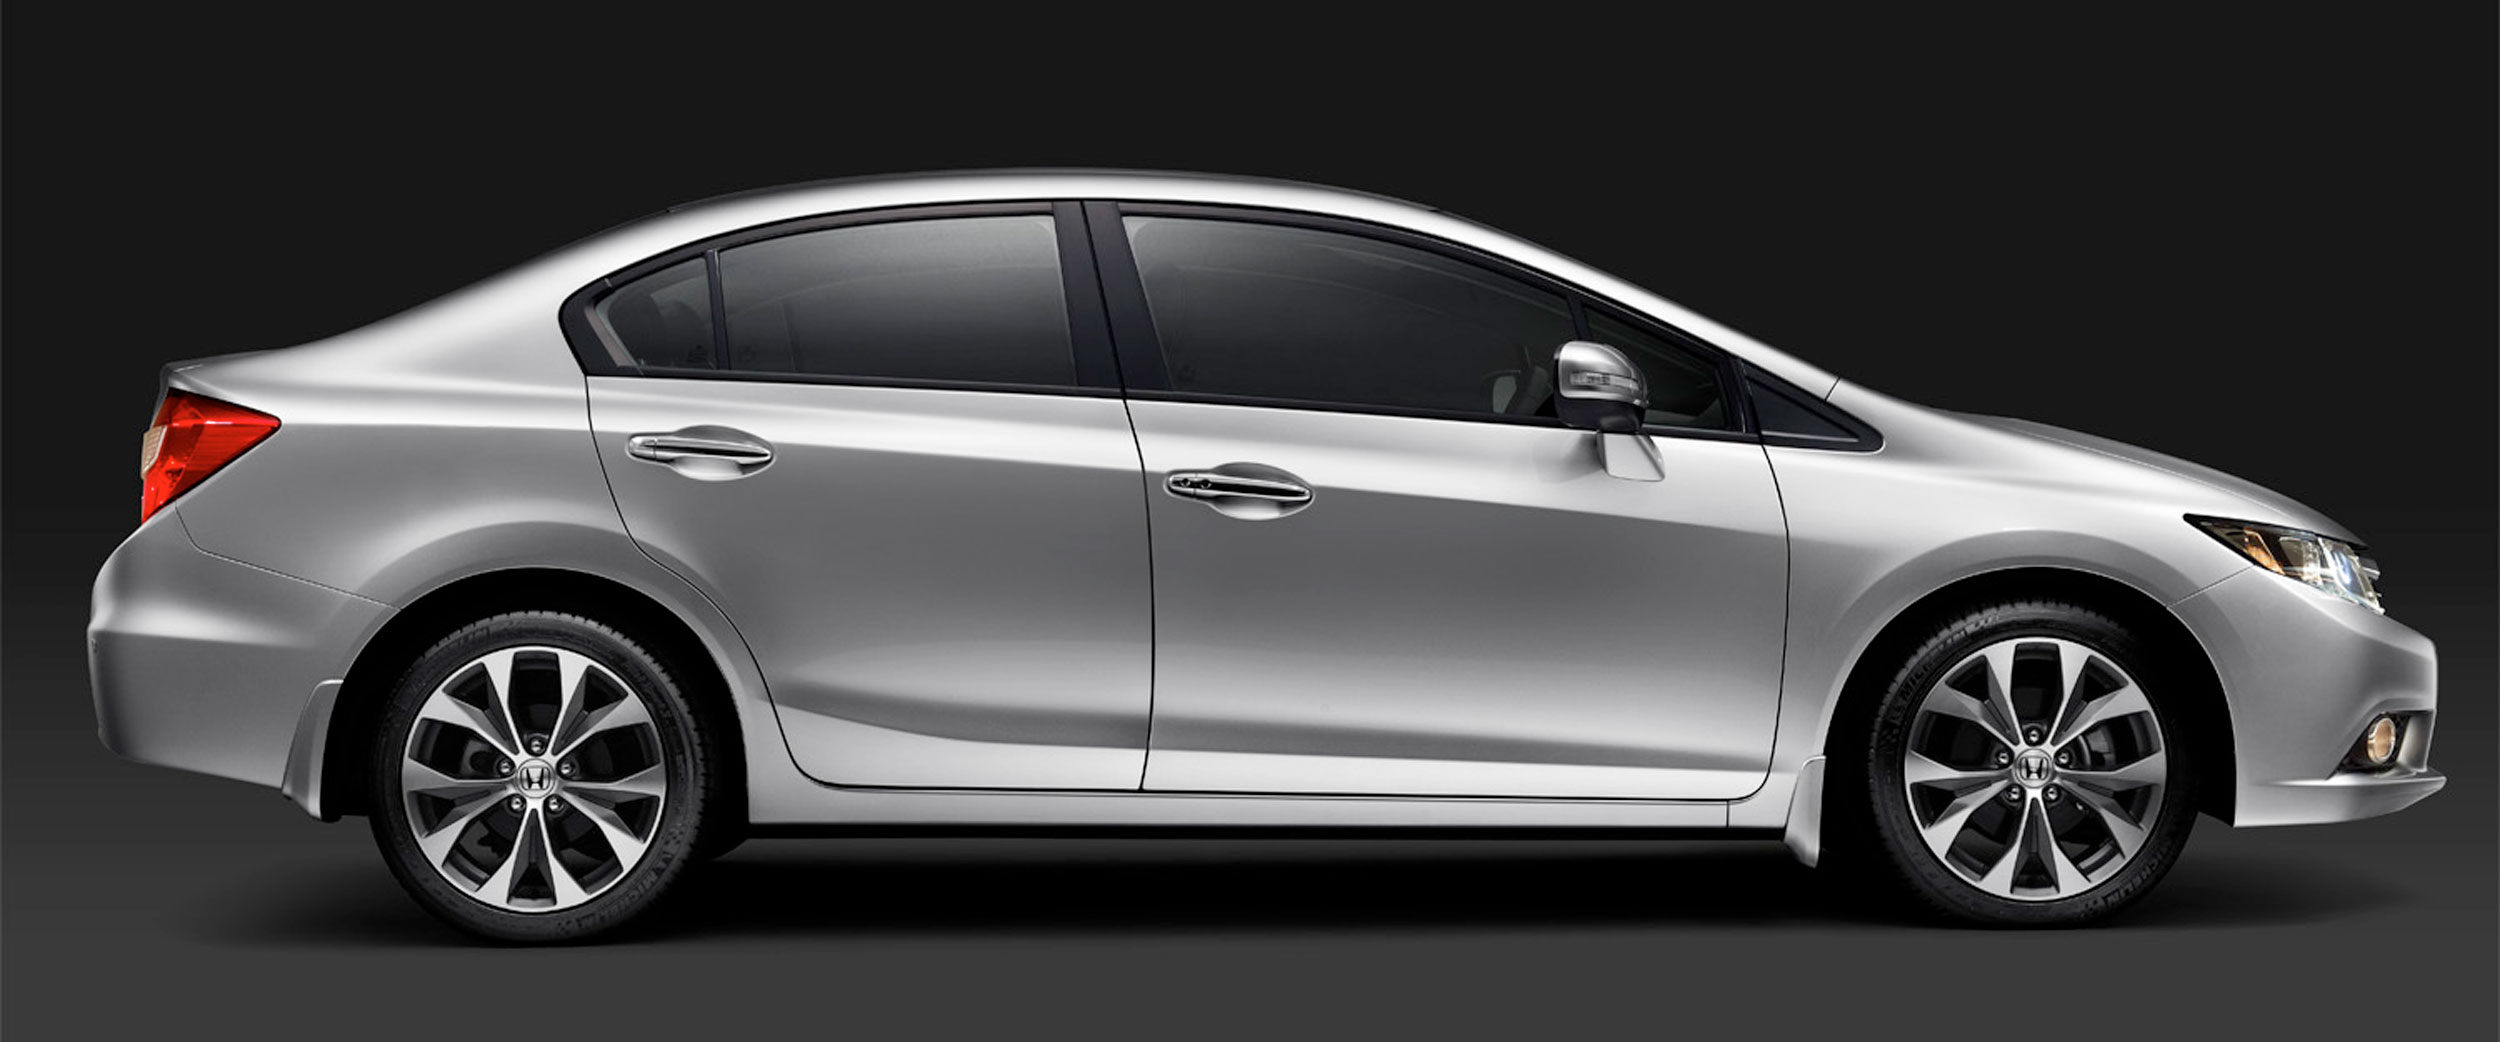 Honda Civic 2016 Exterior Side View